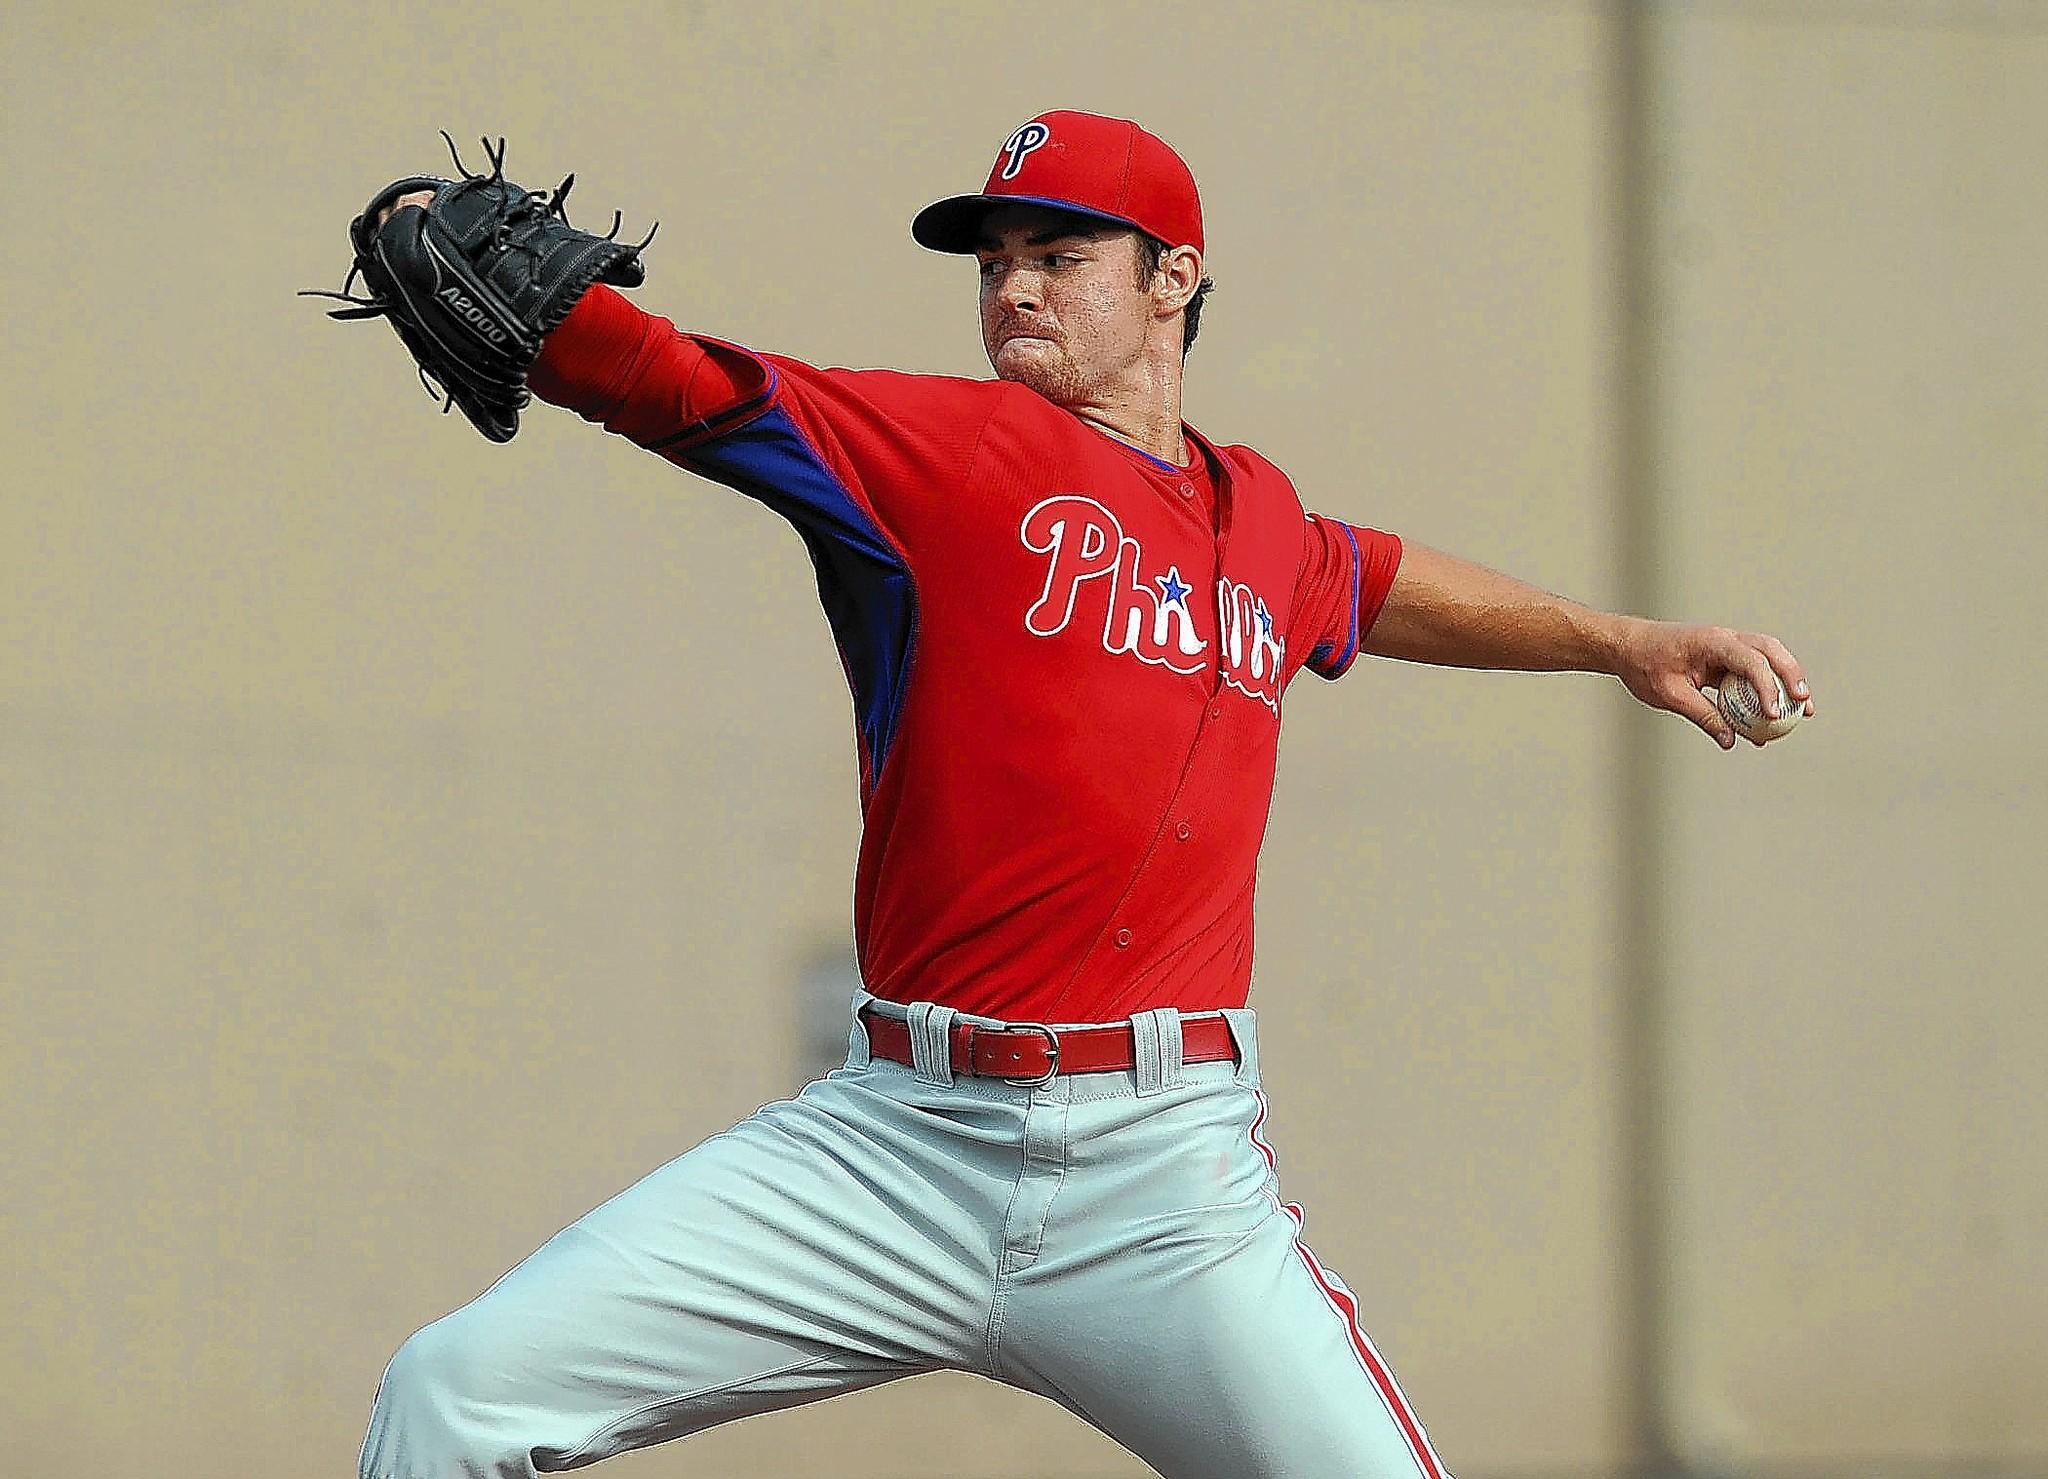 Philadelphia Phillies minor league pitcher Jesse Biddle delivers a pitch during an inner squad baseball scrimmage at the Carpenter Complex in Clearwater, Fl., Monday, March 24, 2014.